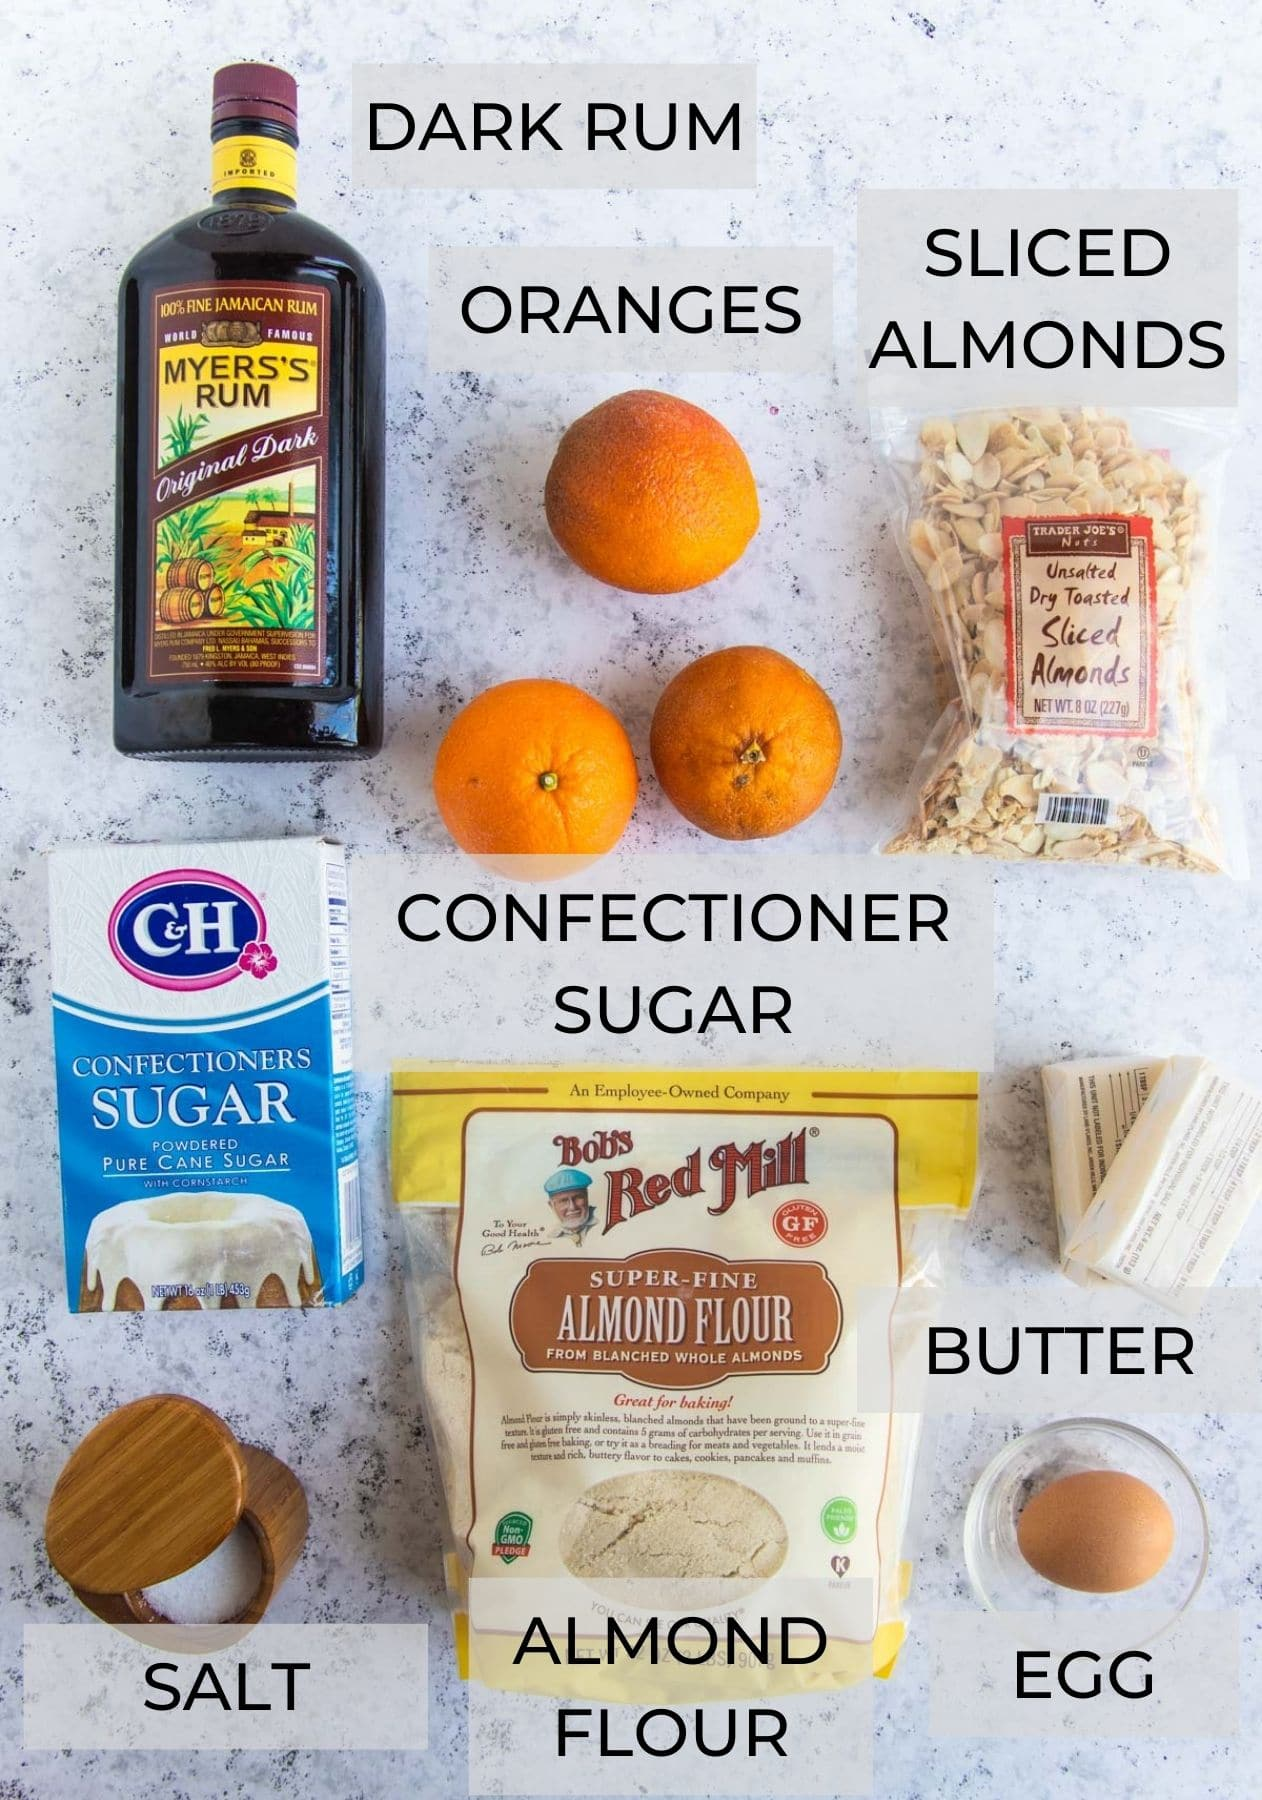 Orange and Almond Cream Ingredients - Almond Flour, Toasted Almonds, Butter, Egg, Confectioners Sugar, Kosher Salt, Fresh Oranges and Rum